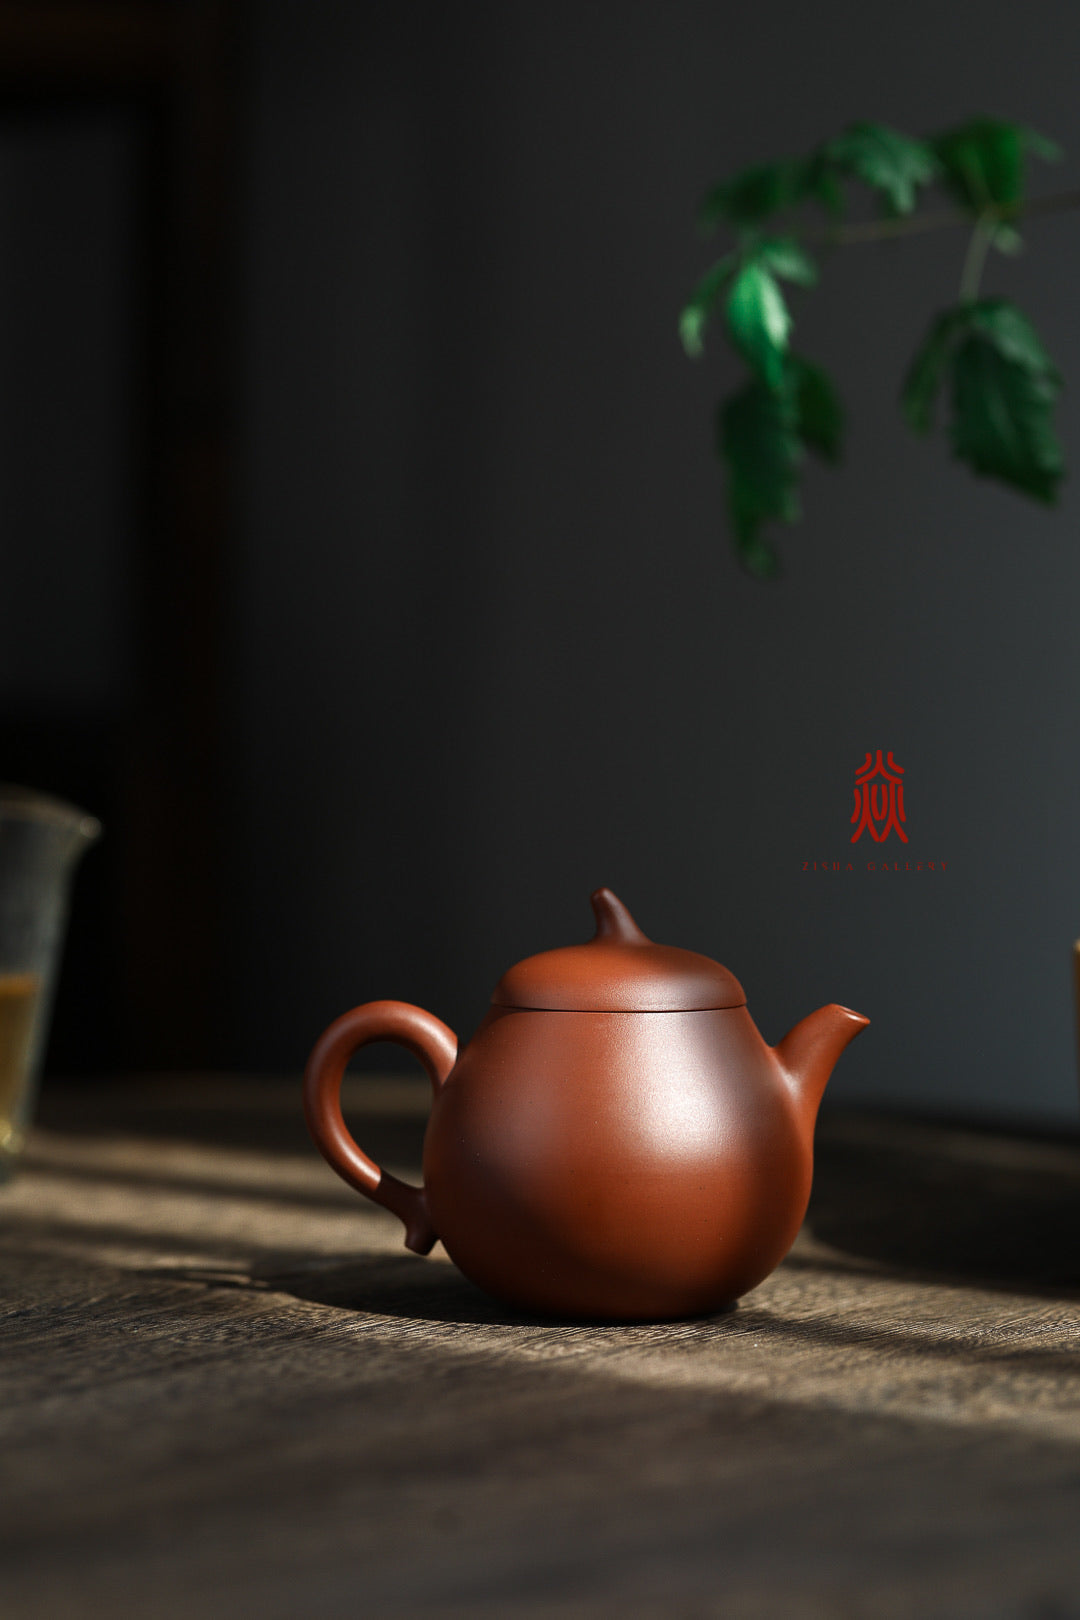 茄段 Qie Duan 150ML Xiao Hong Ni 小红泥 王建芳 Wang Jian Fang - The Phans Yixing Zisha Teapot